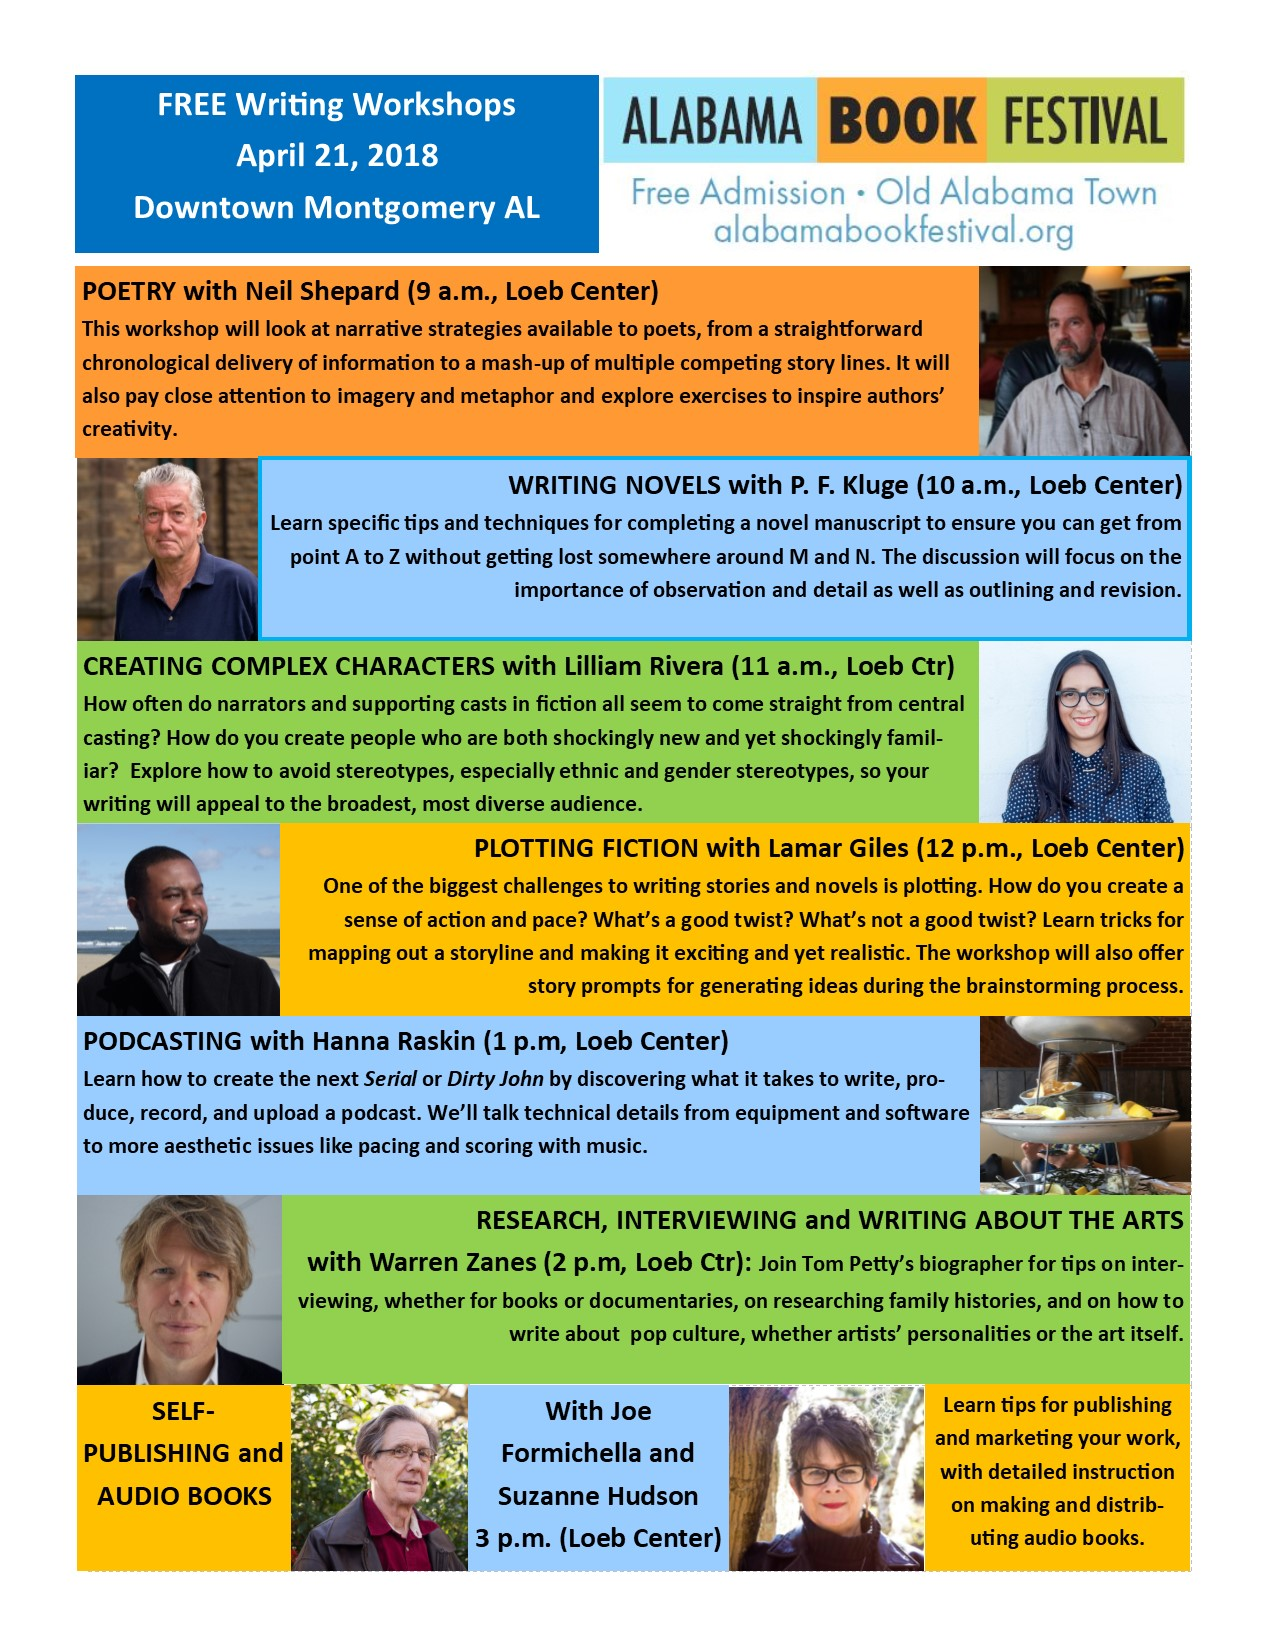 ABF 2018 Free Writing Workshops flier 3.jpg